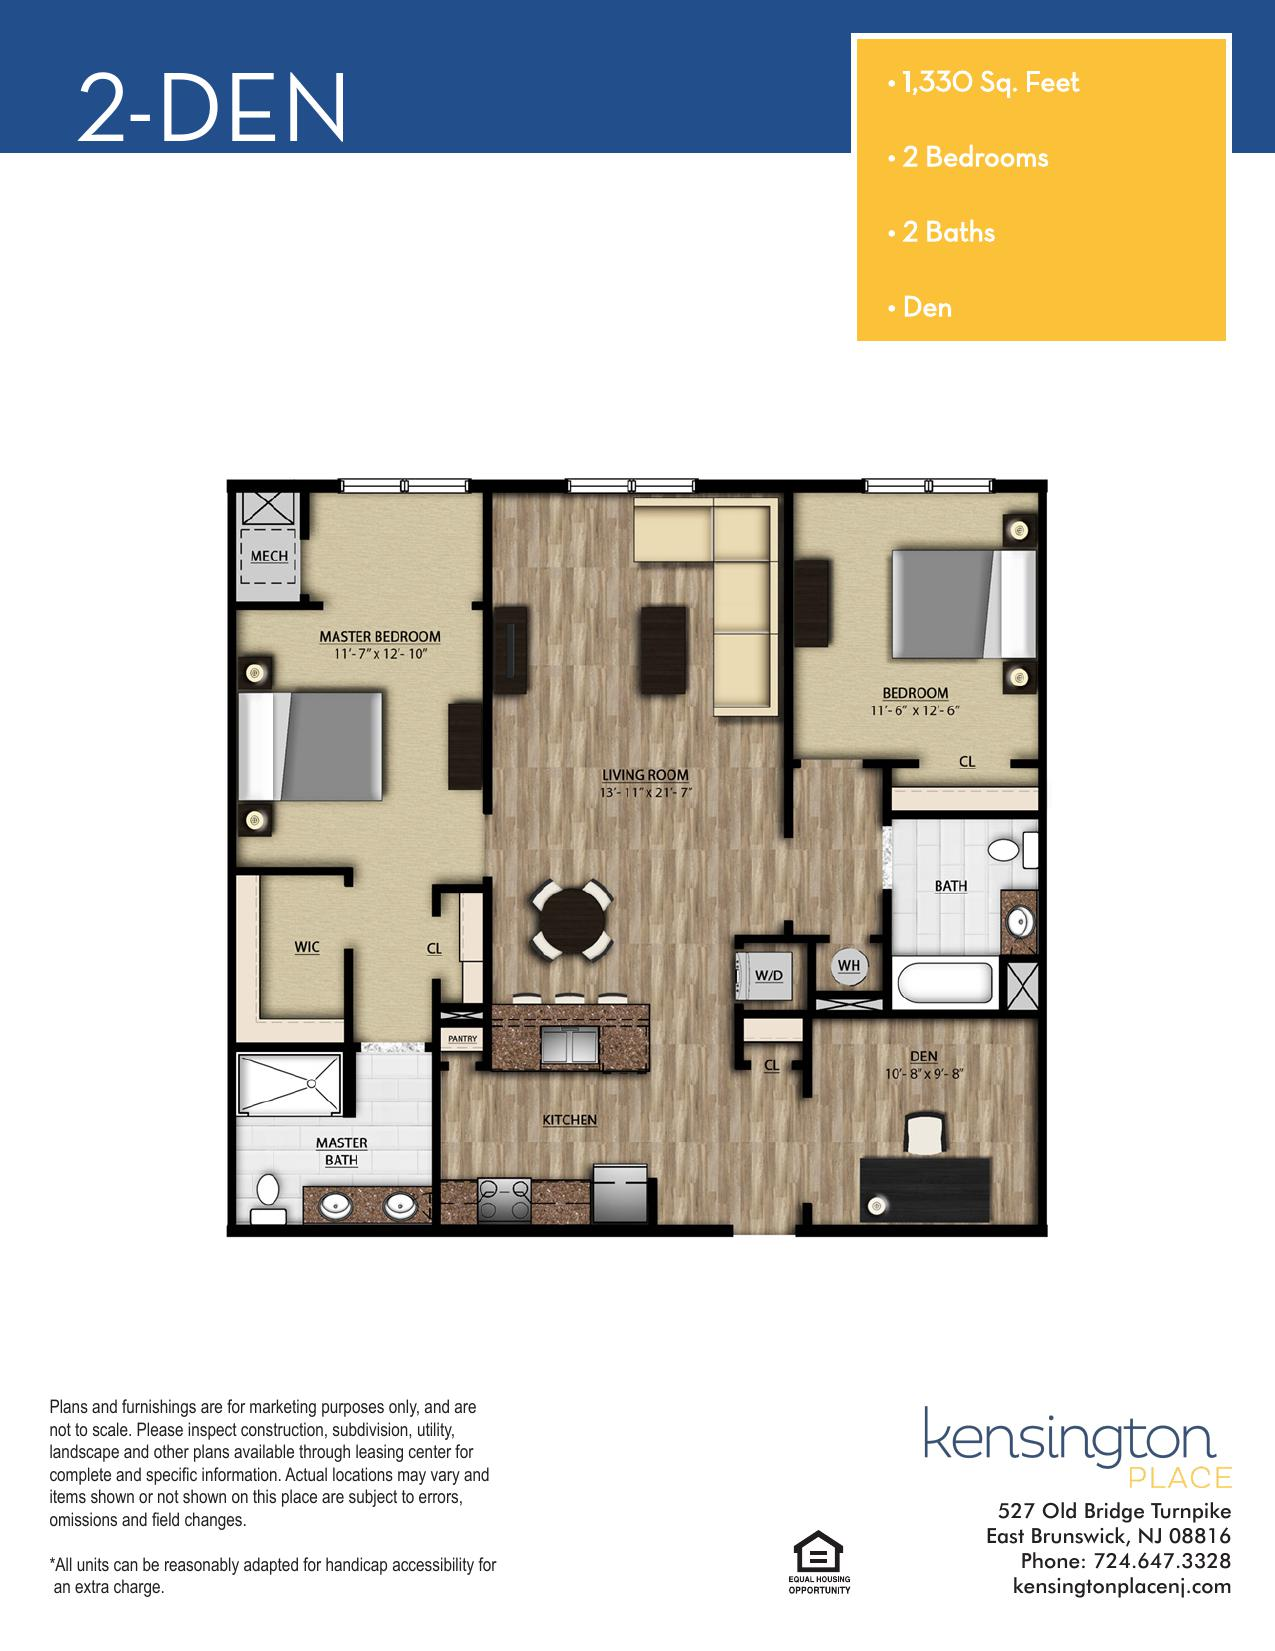 Kensington Place Apartment Floor Plan 2 DEN